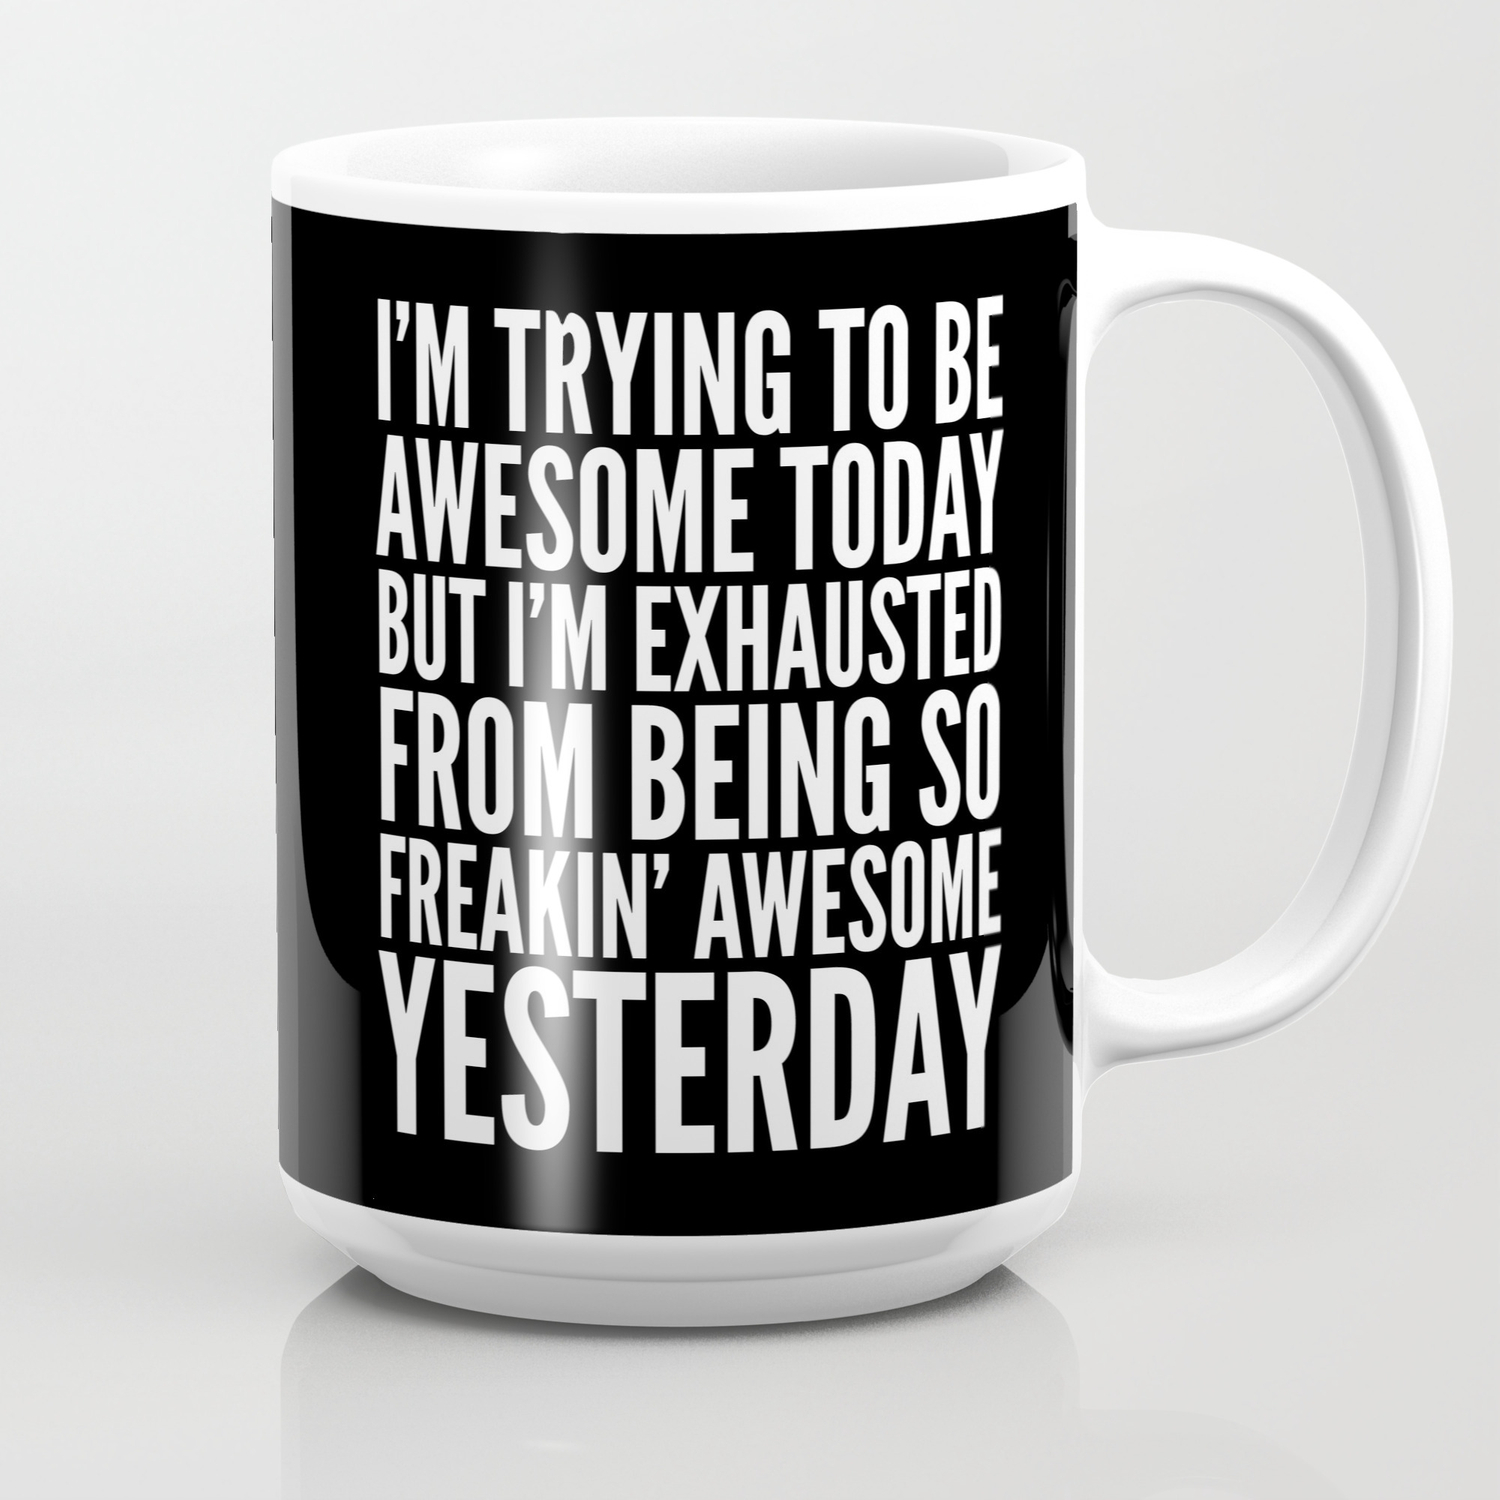 I M Trying To Be Awesome Today But I M Exhausted From Being So Freakin Awesome Yesterday B W Coffee Mug By Creativeangel Society6